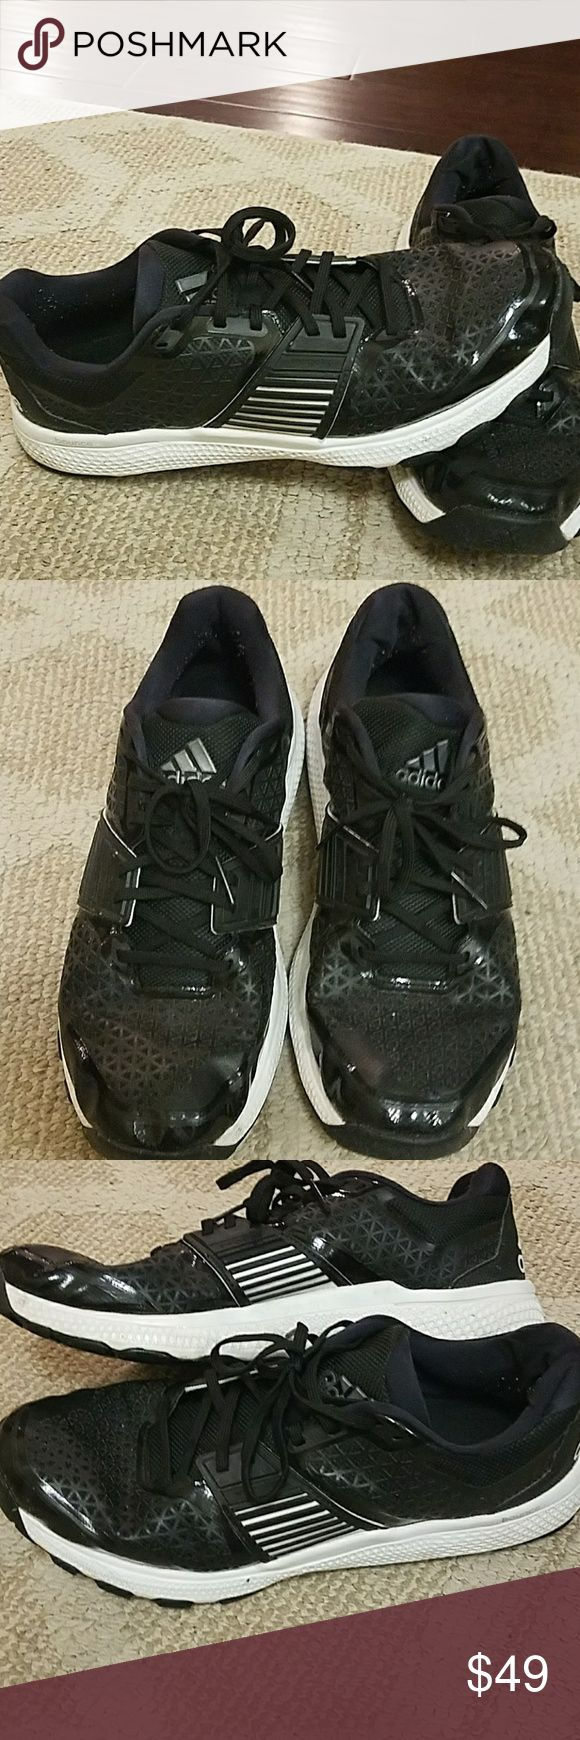 Adidas Bounce shoes Adidas Bounce, in good condition Adidas Shoes Athletic Shoes